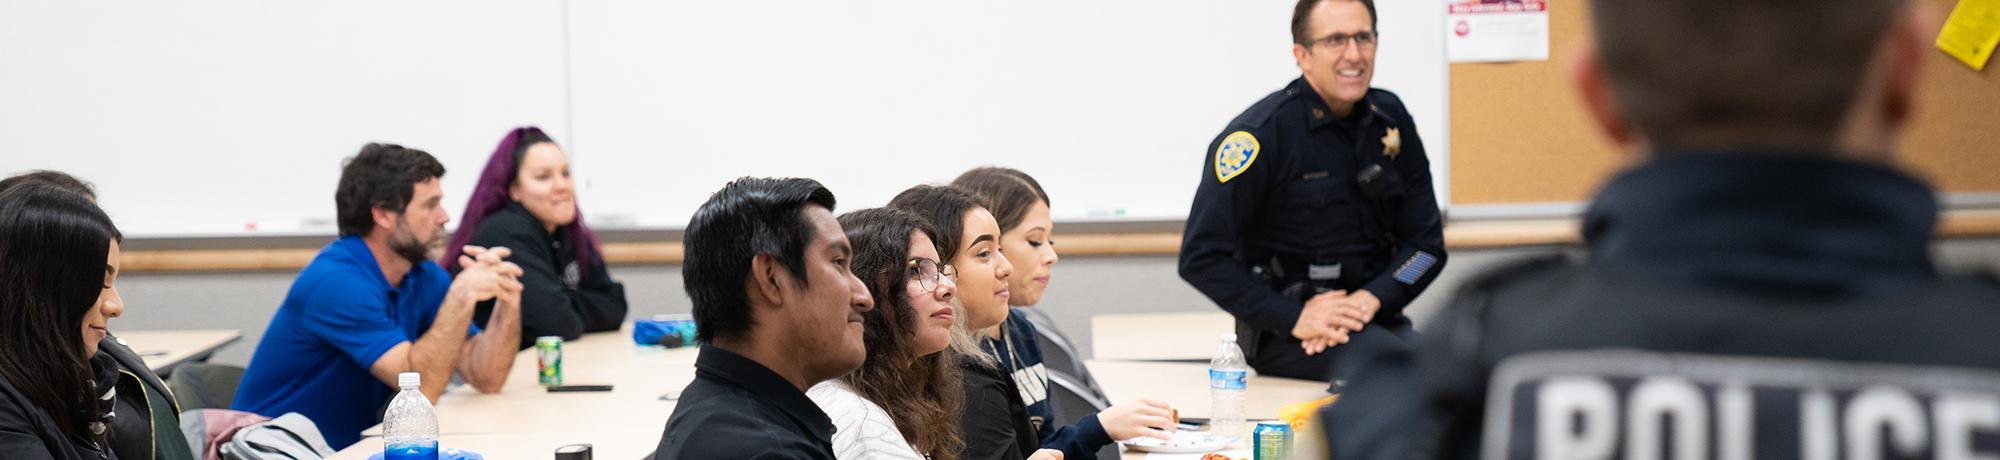 Police captain smiling with students listening in a classroom